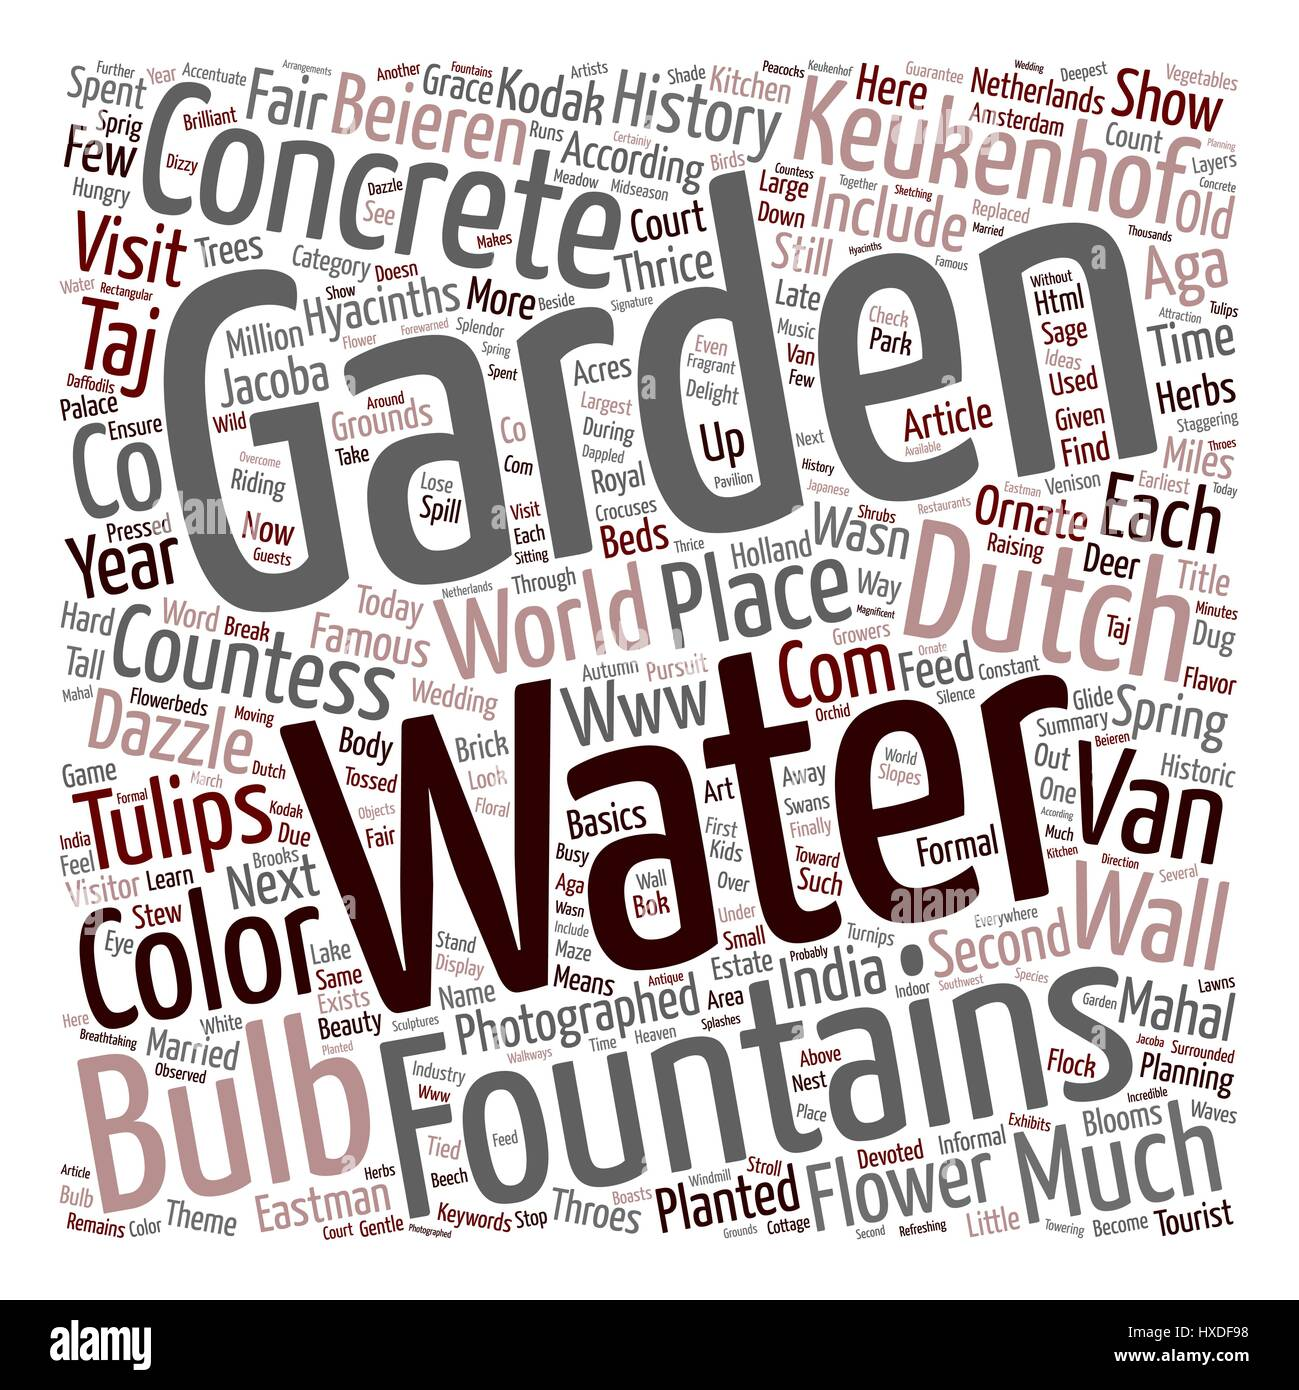 Keukenhof Gardens Dazzle With Bulbs And Concrete Water Fountains text background wordcloud concept - Stock Vector